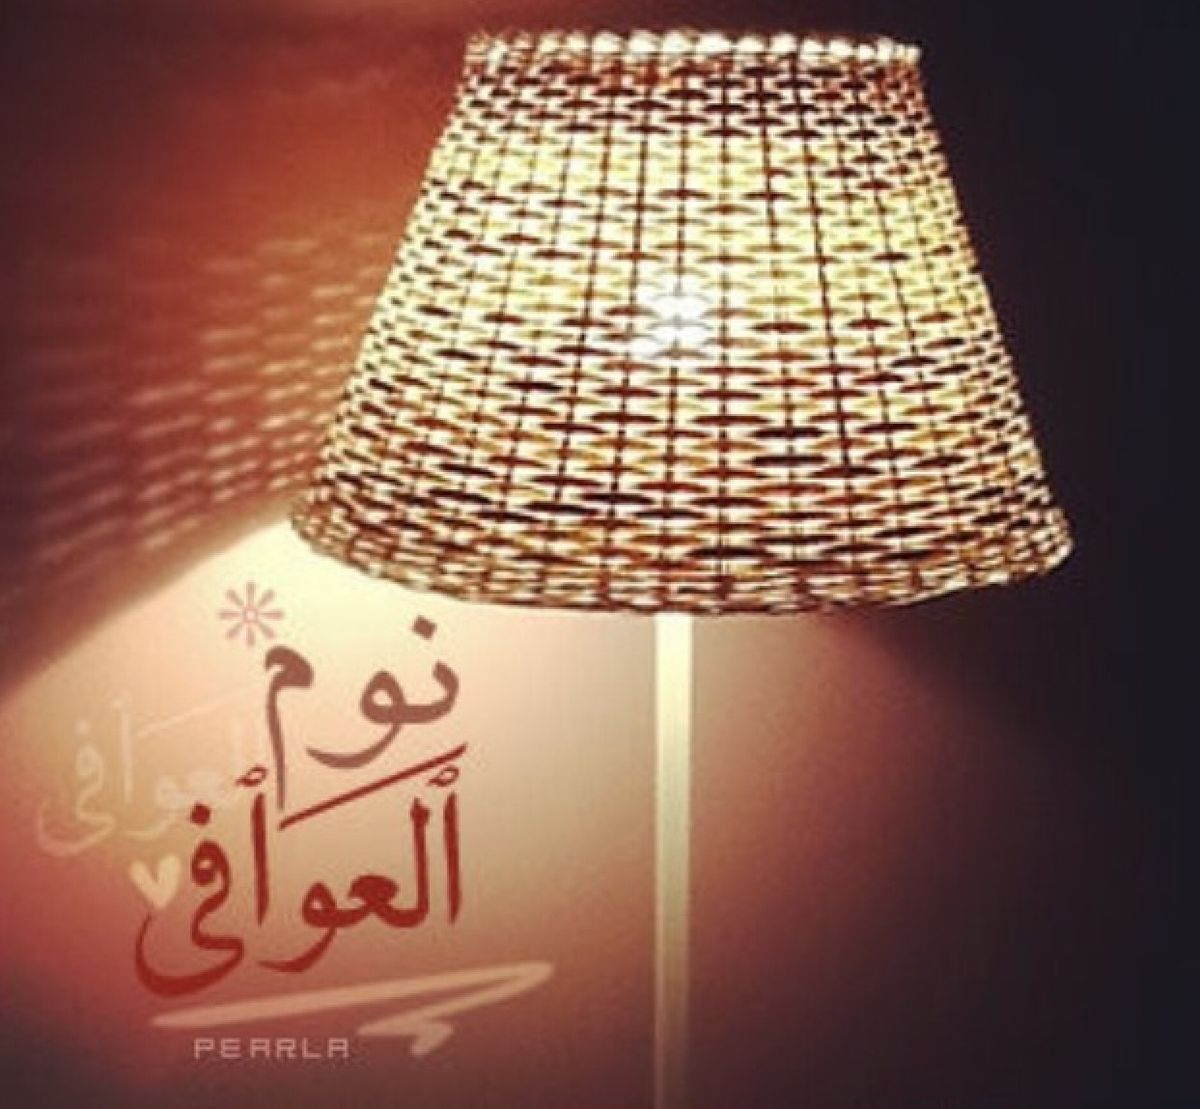 Desertrose Good Night نوم العوافي Good Morning Good Night Lamp Shade Good Evening